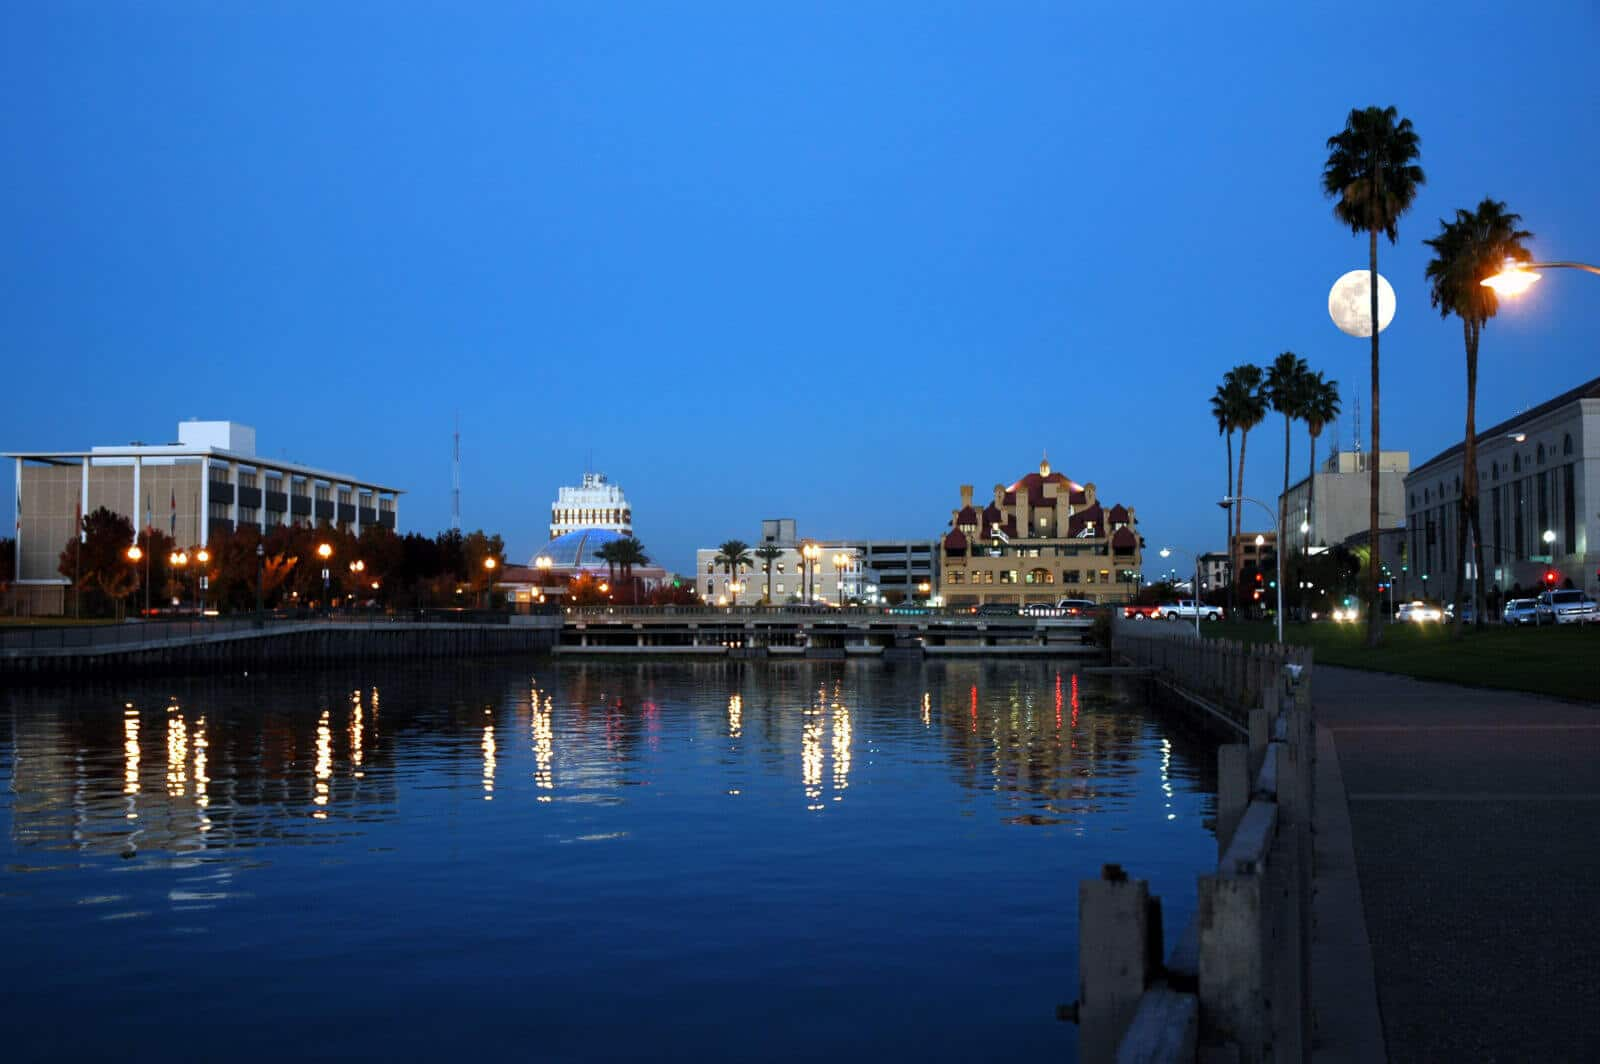 Find Drug and Alcohol Rehab in Stockton, California